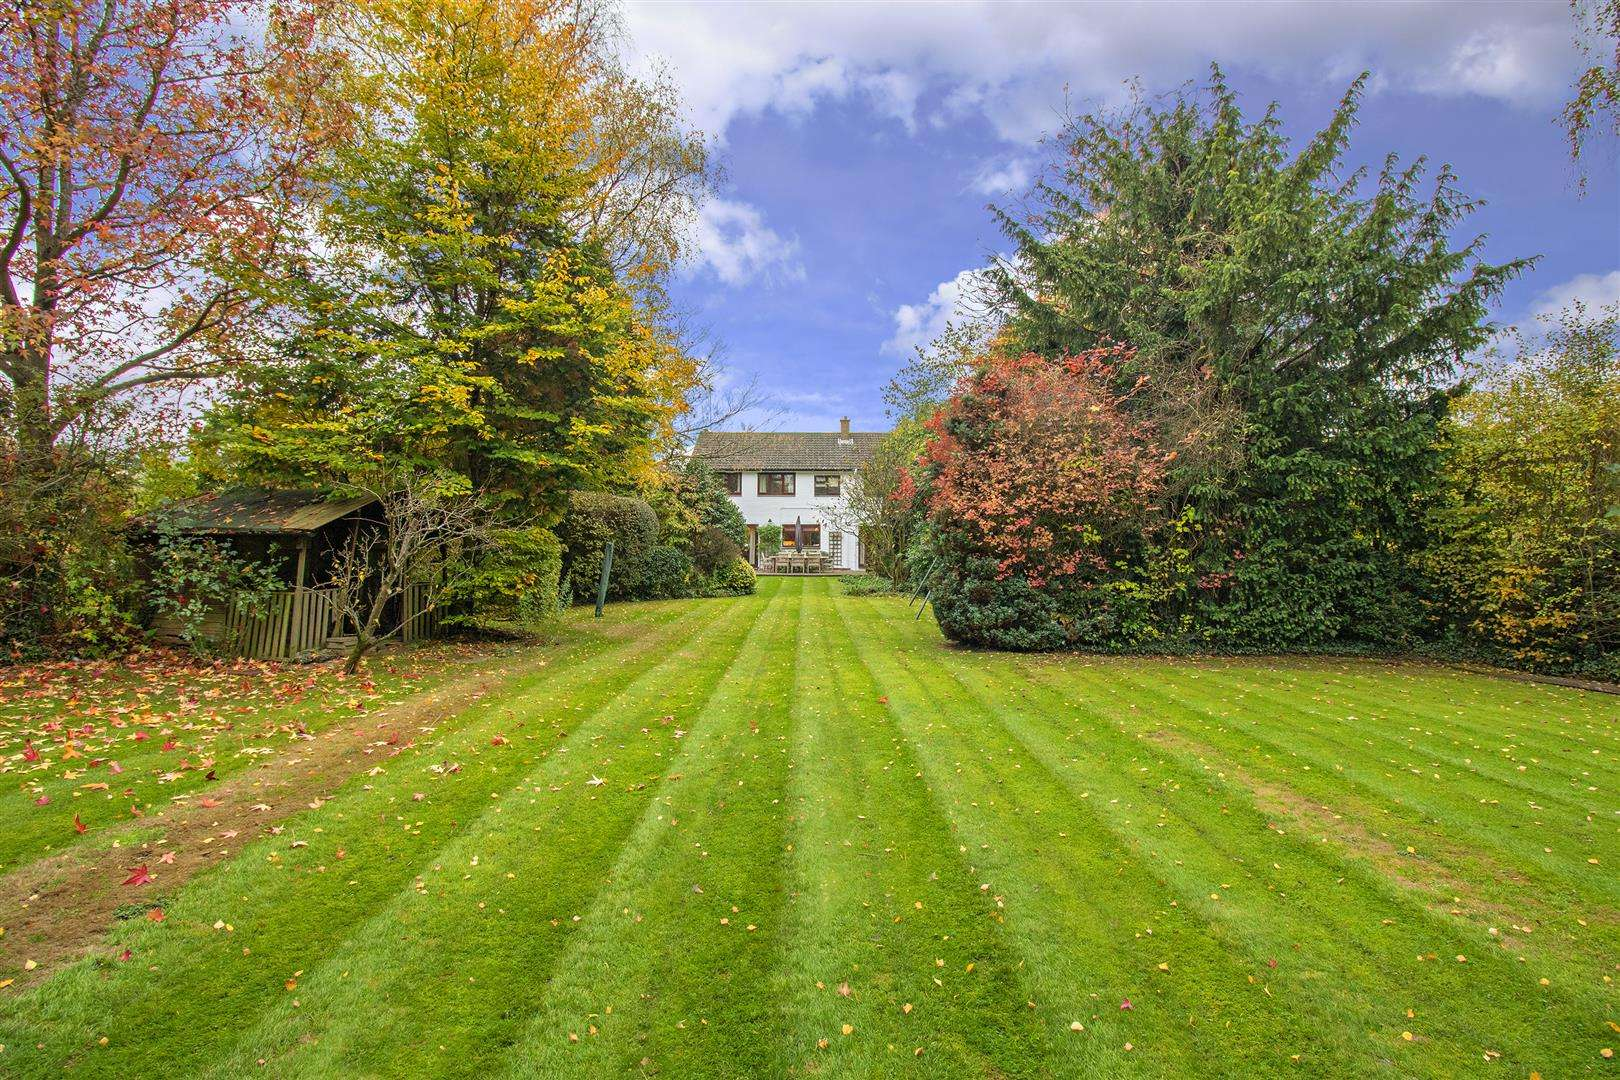 5 bed for sale - (Property Image 14)